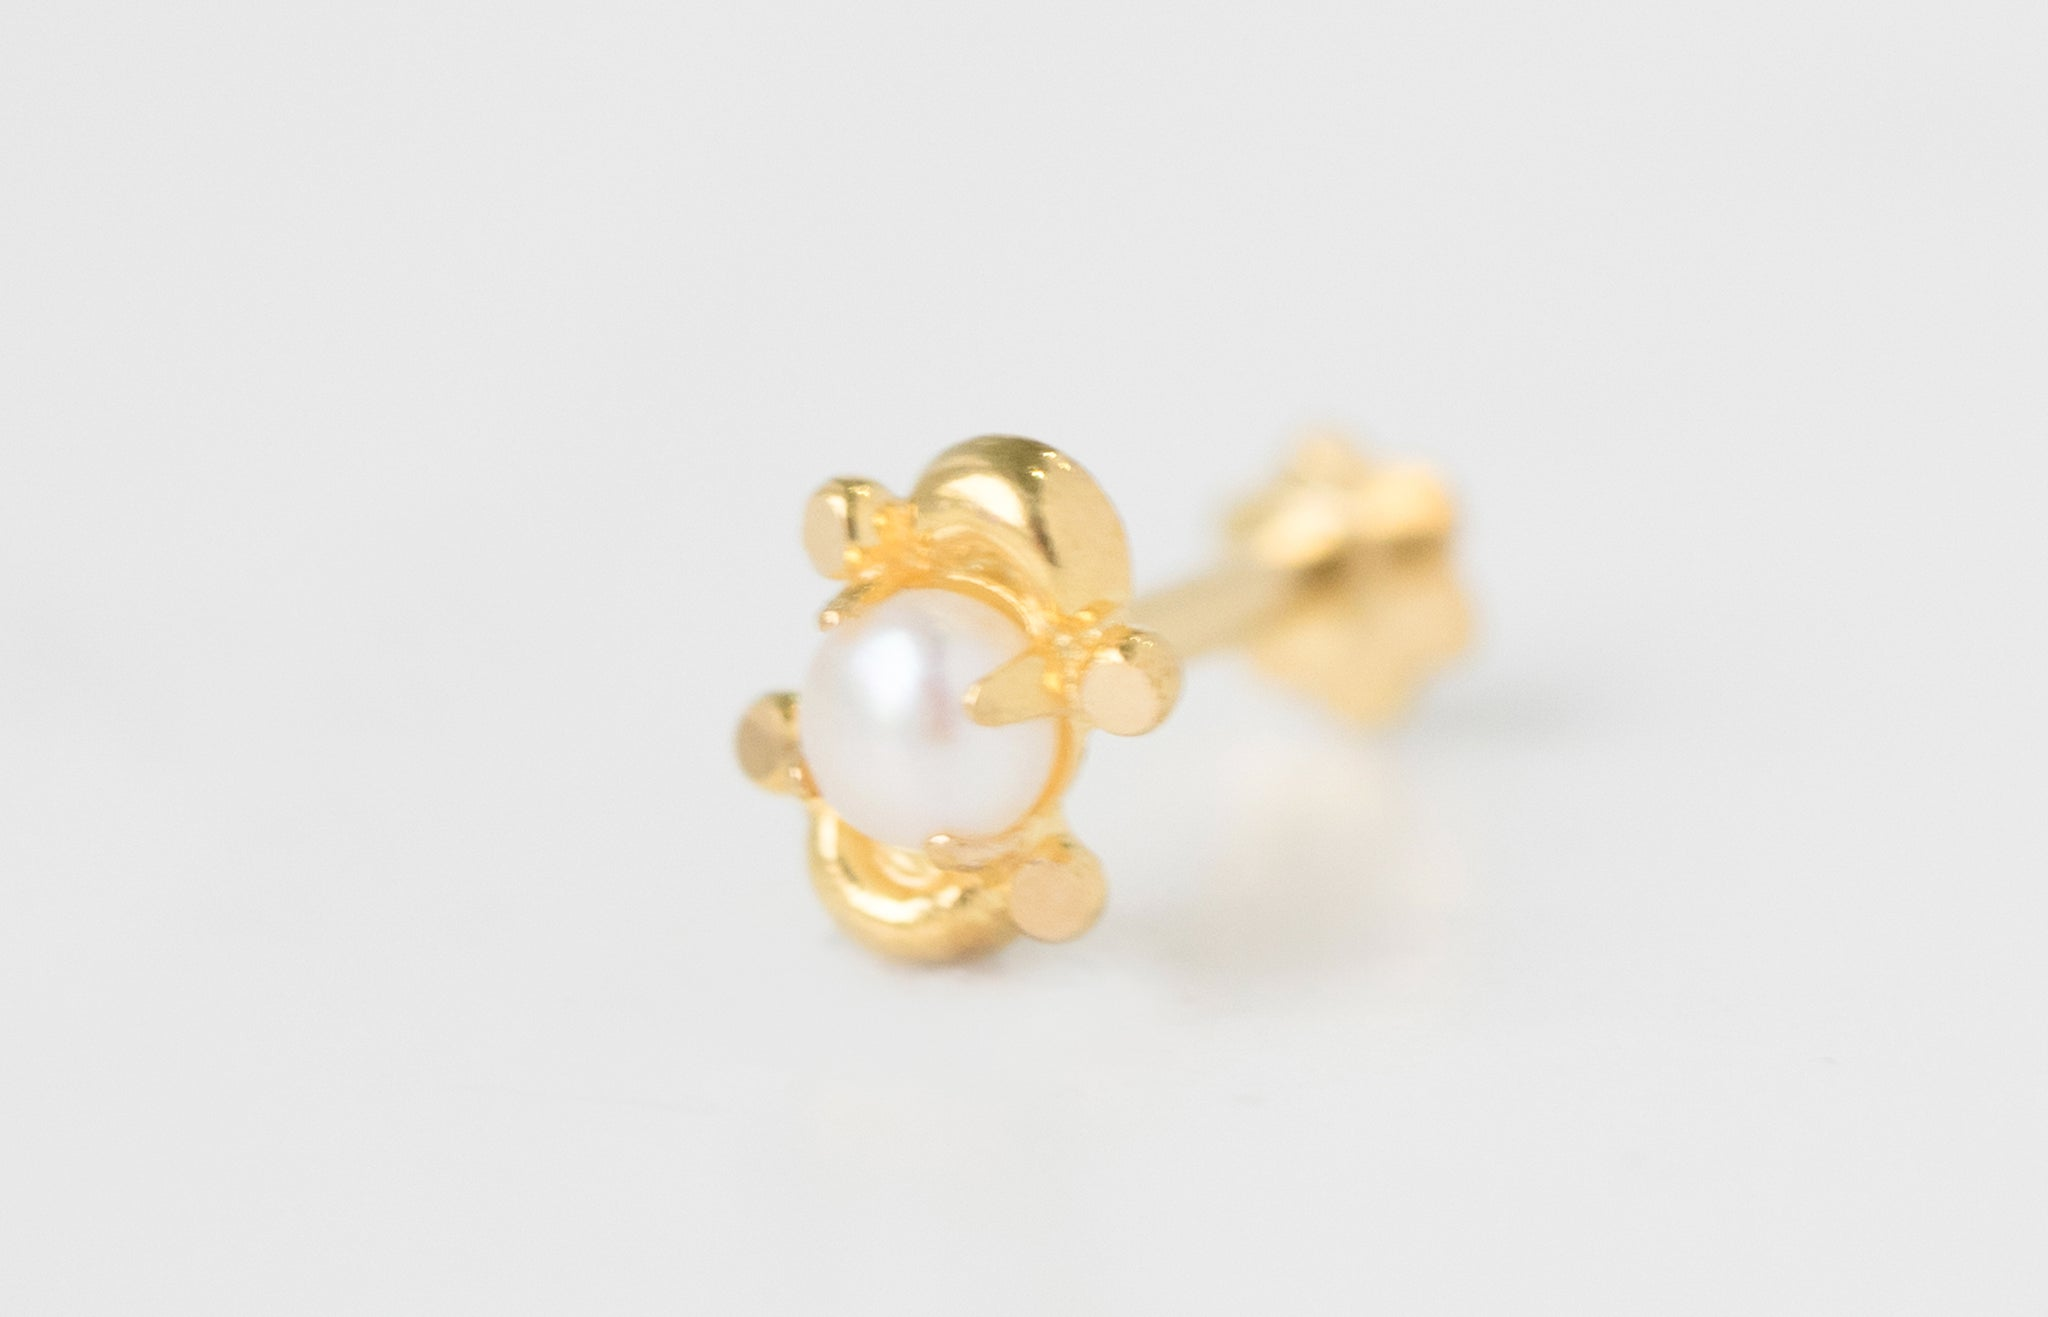 18ct Yellow Gold Screw Back Nose Stud set with a Cultured Pearl NIP-6-770e